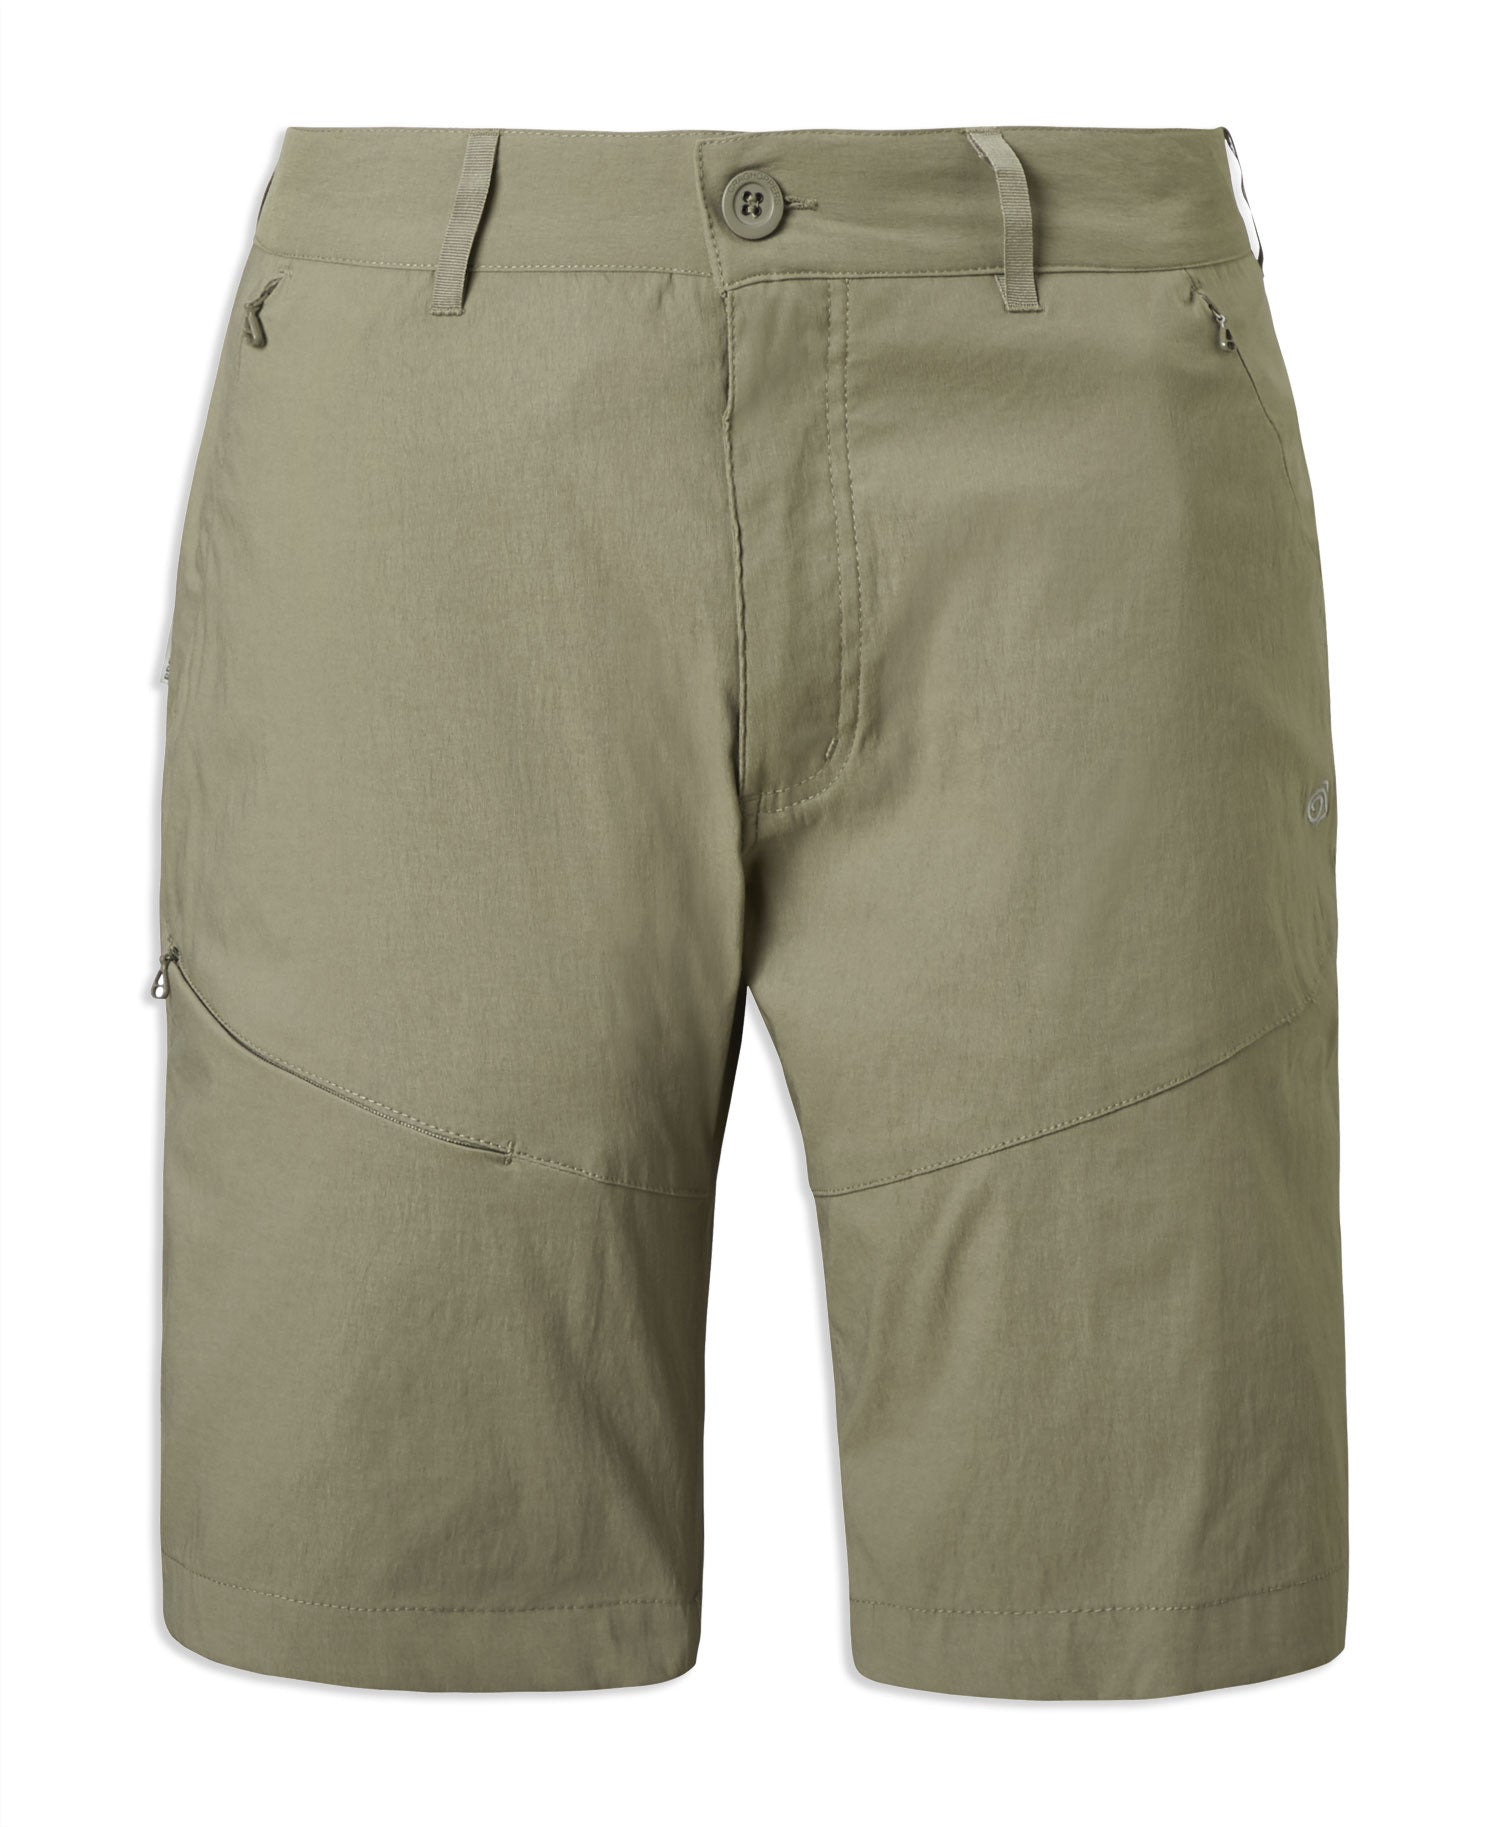 Pebble Craghoppers Kiwi Pro Shorts with stretch